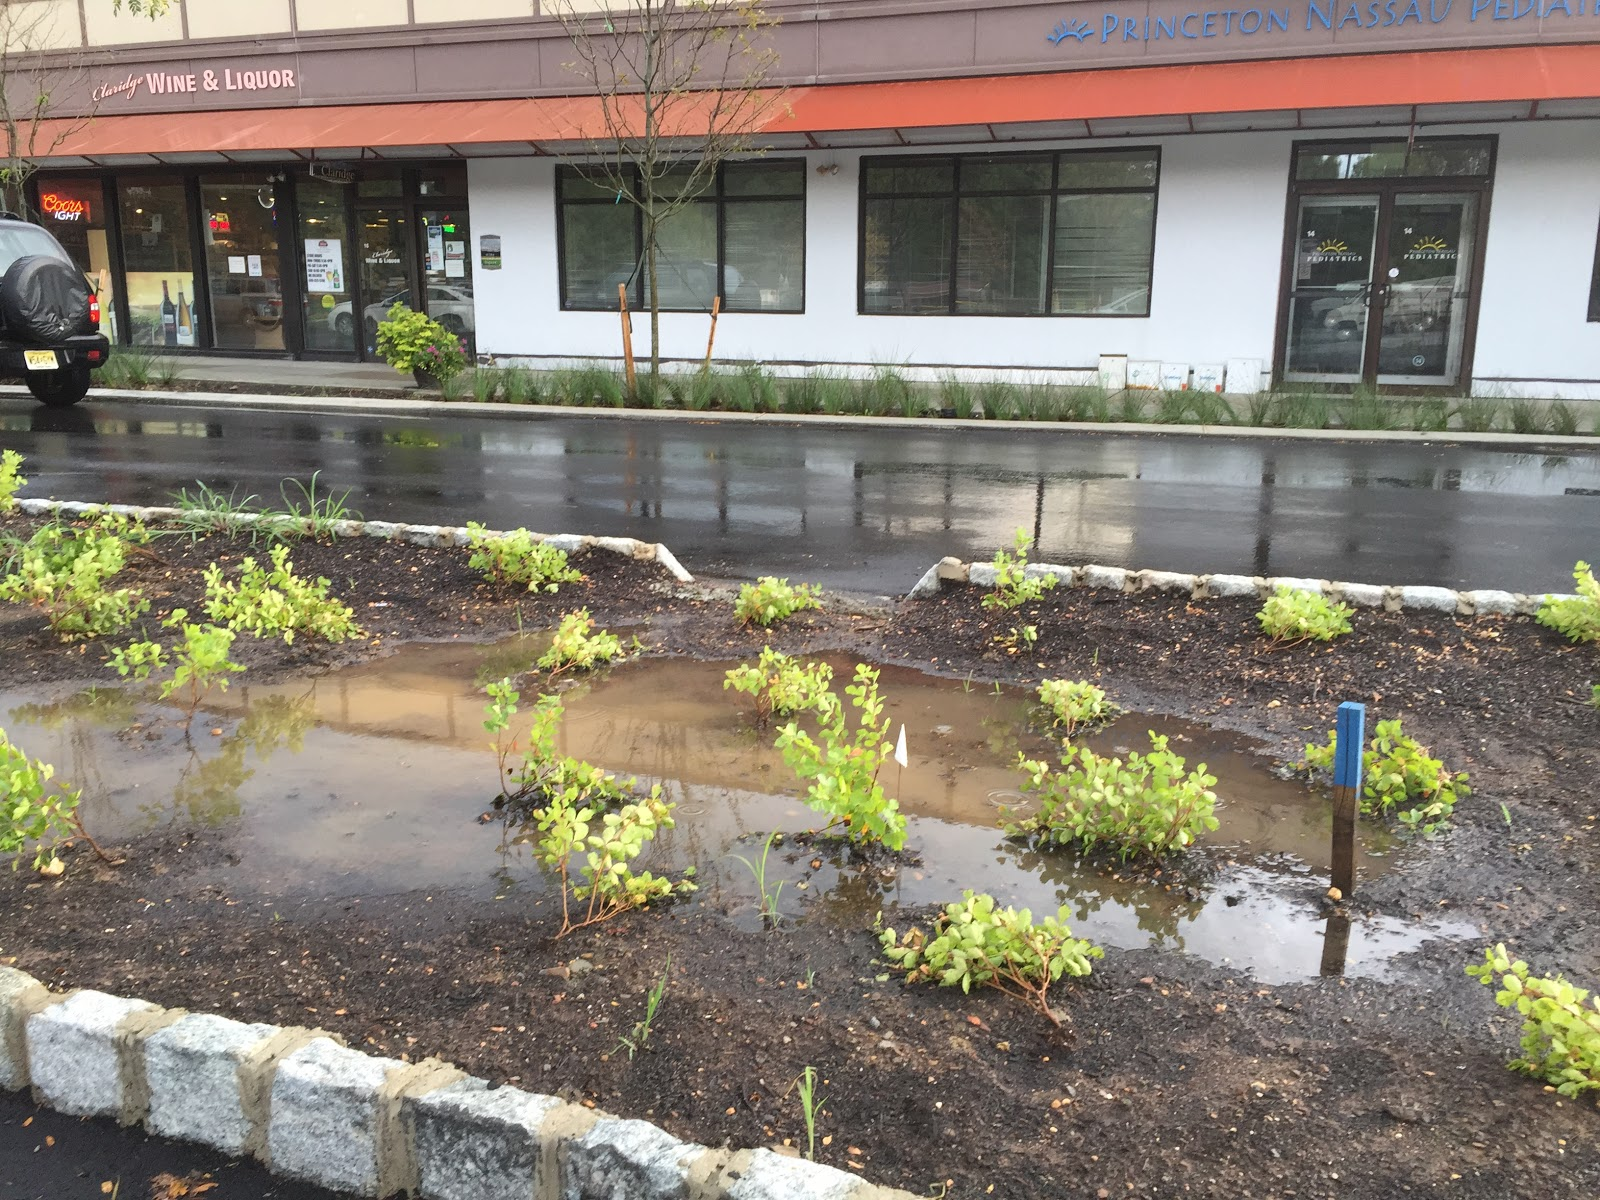 capturing runoff at the shopping center princeton nature notes